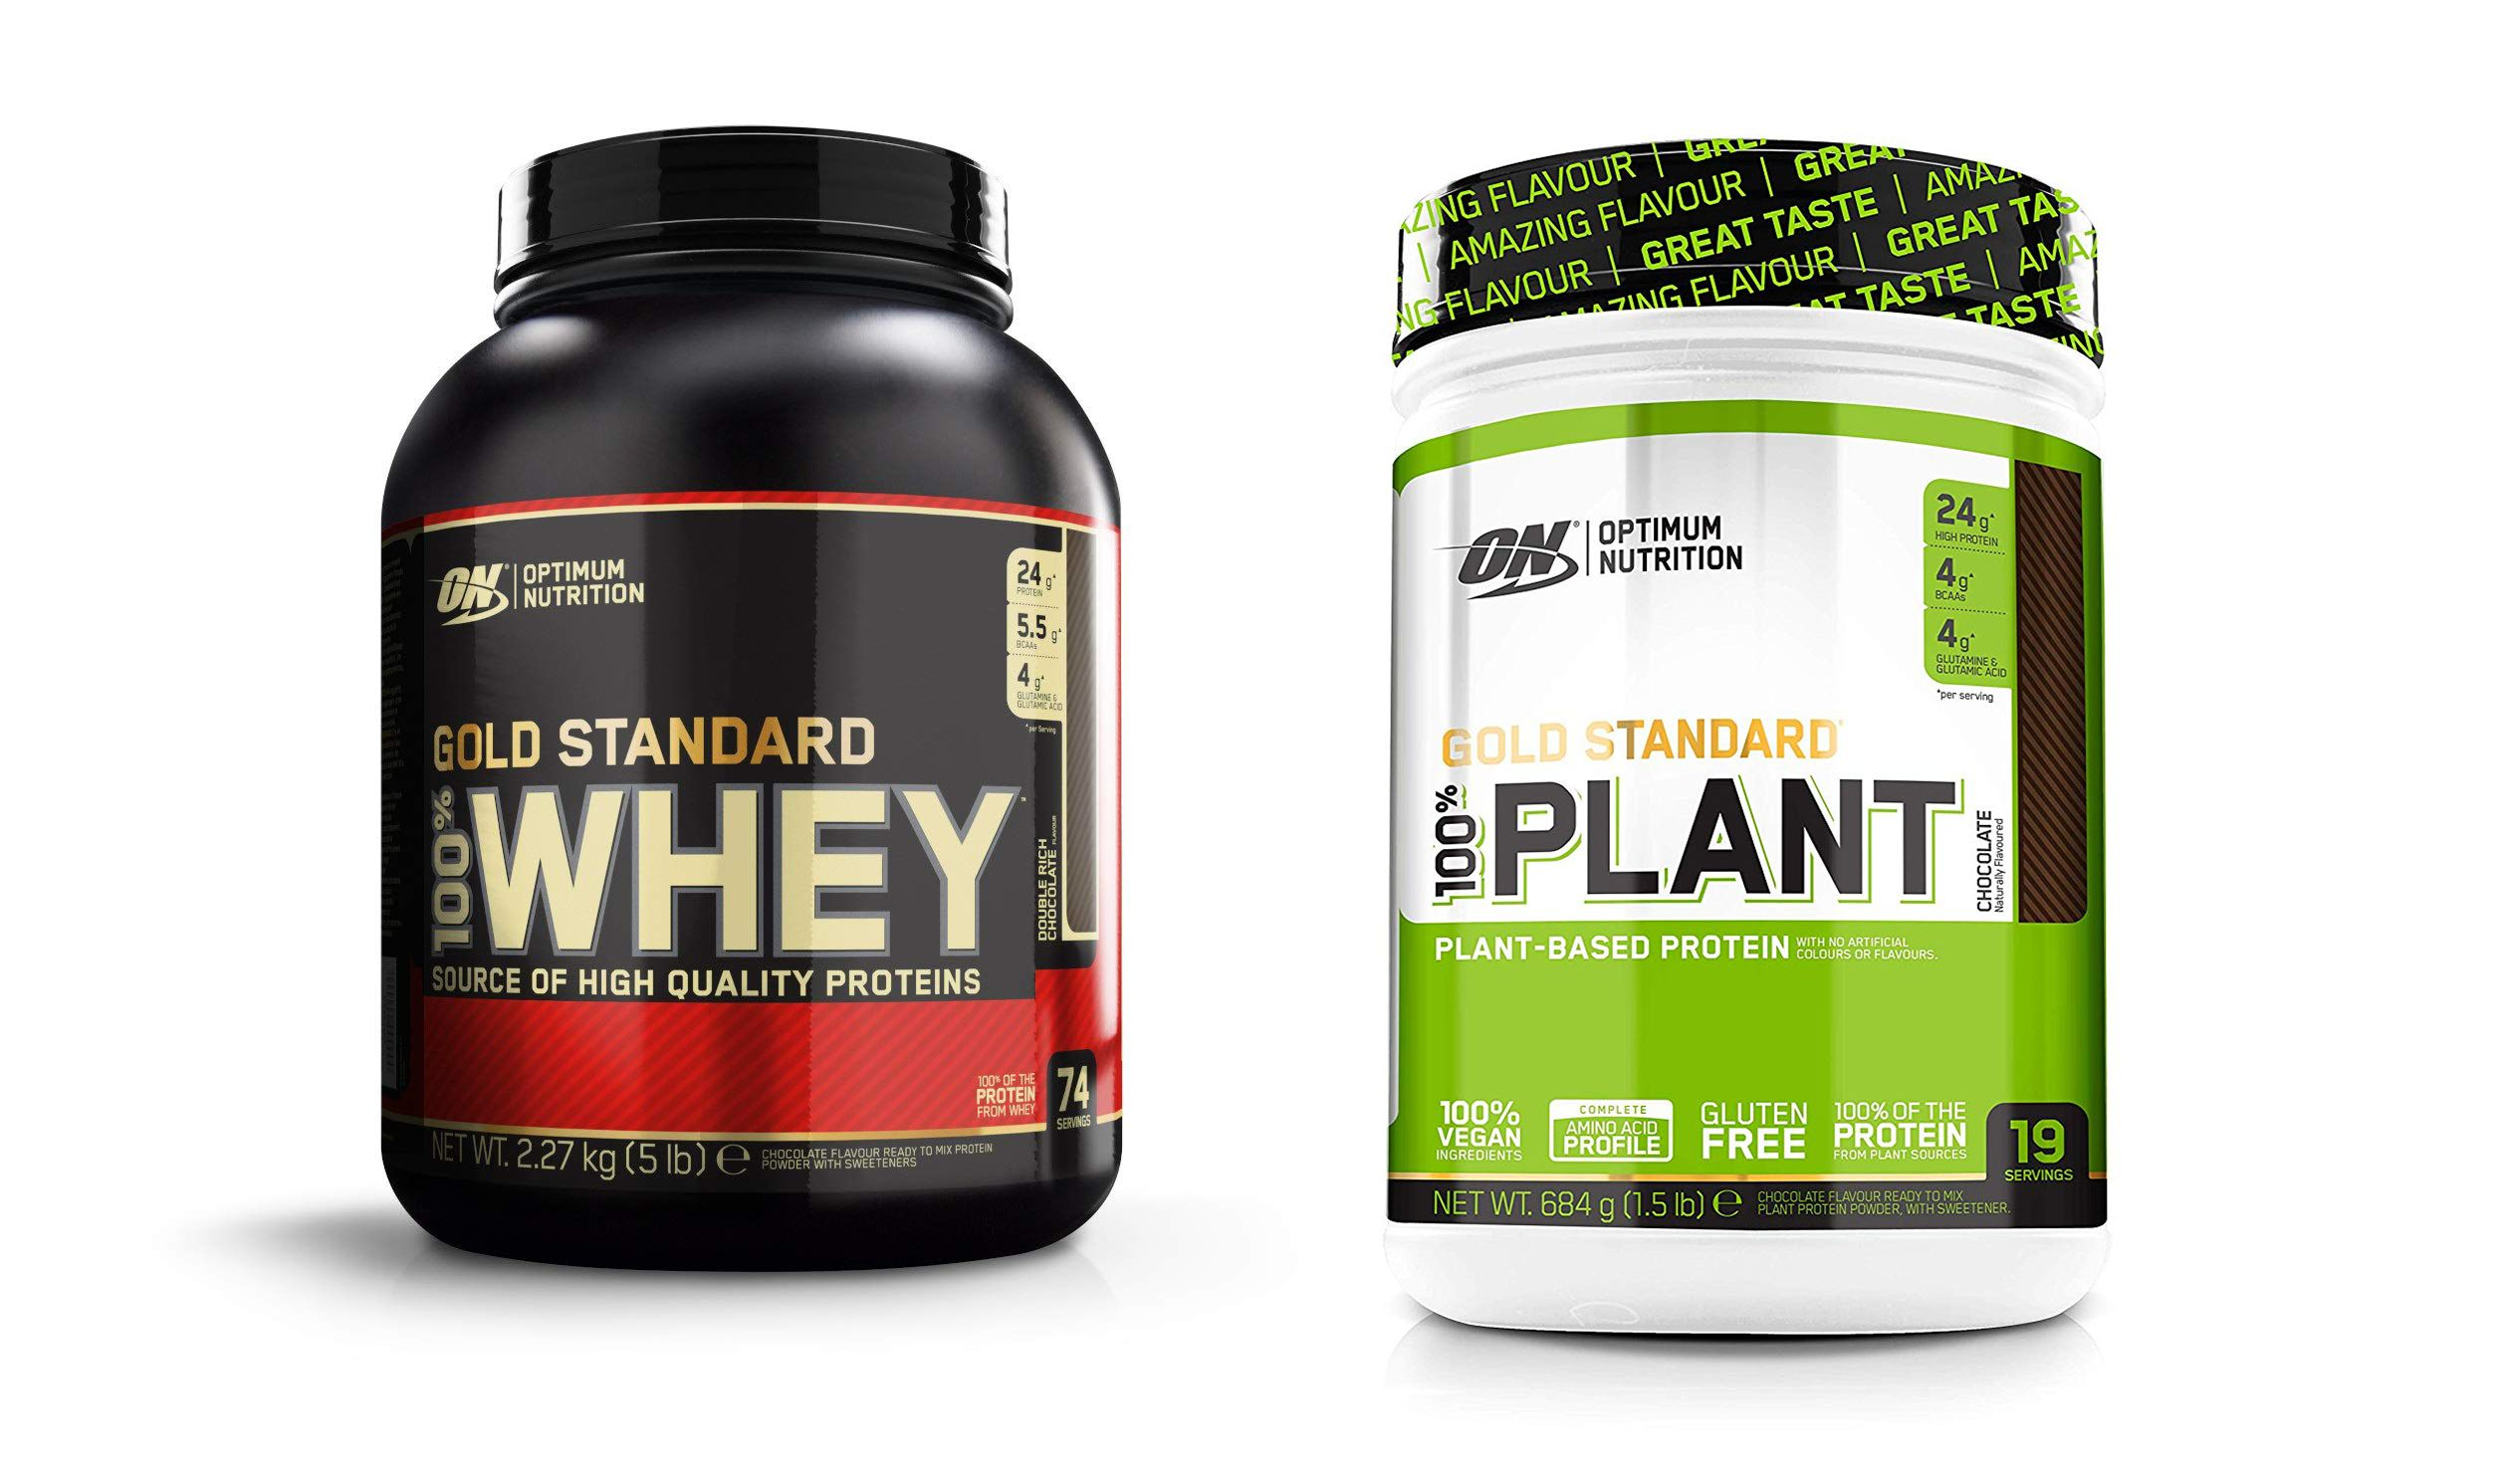 Save Up to 60% on These Men's Health Approved Optimum Nutrition Supplements